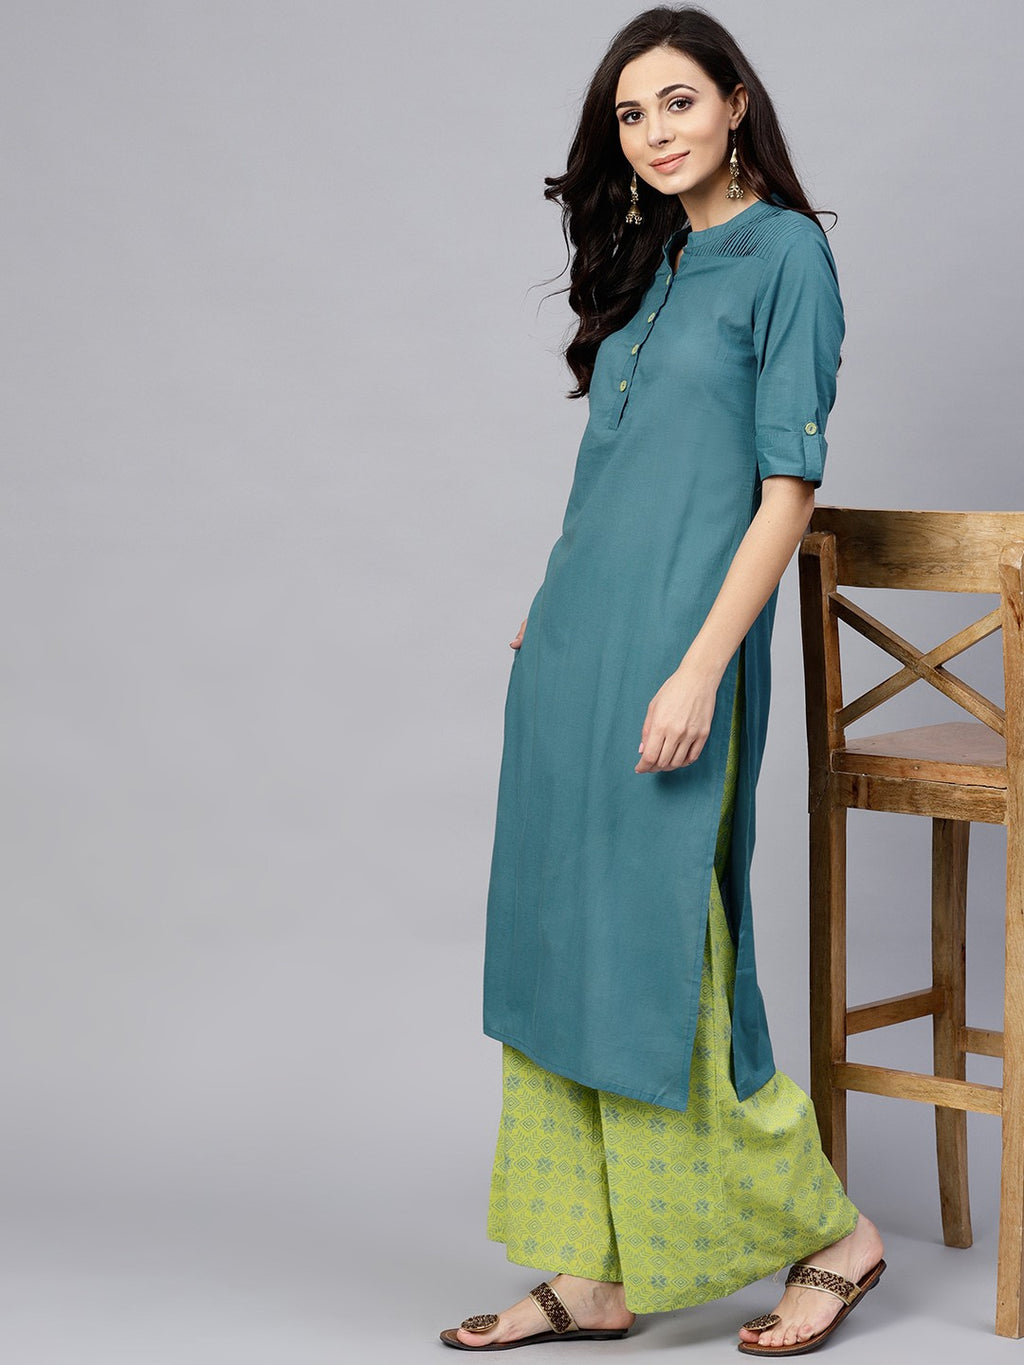 Blue Solid Kurta With Green Printed Palazzo Set (Fully Stitched) | Znx4ever.com